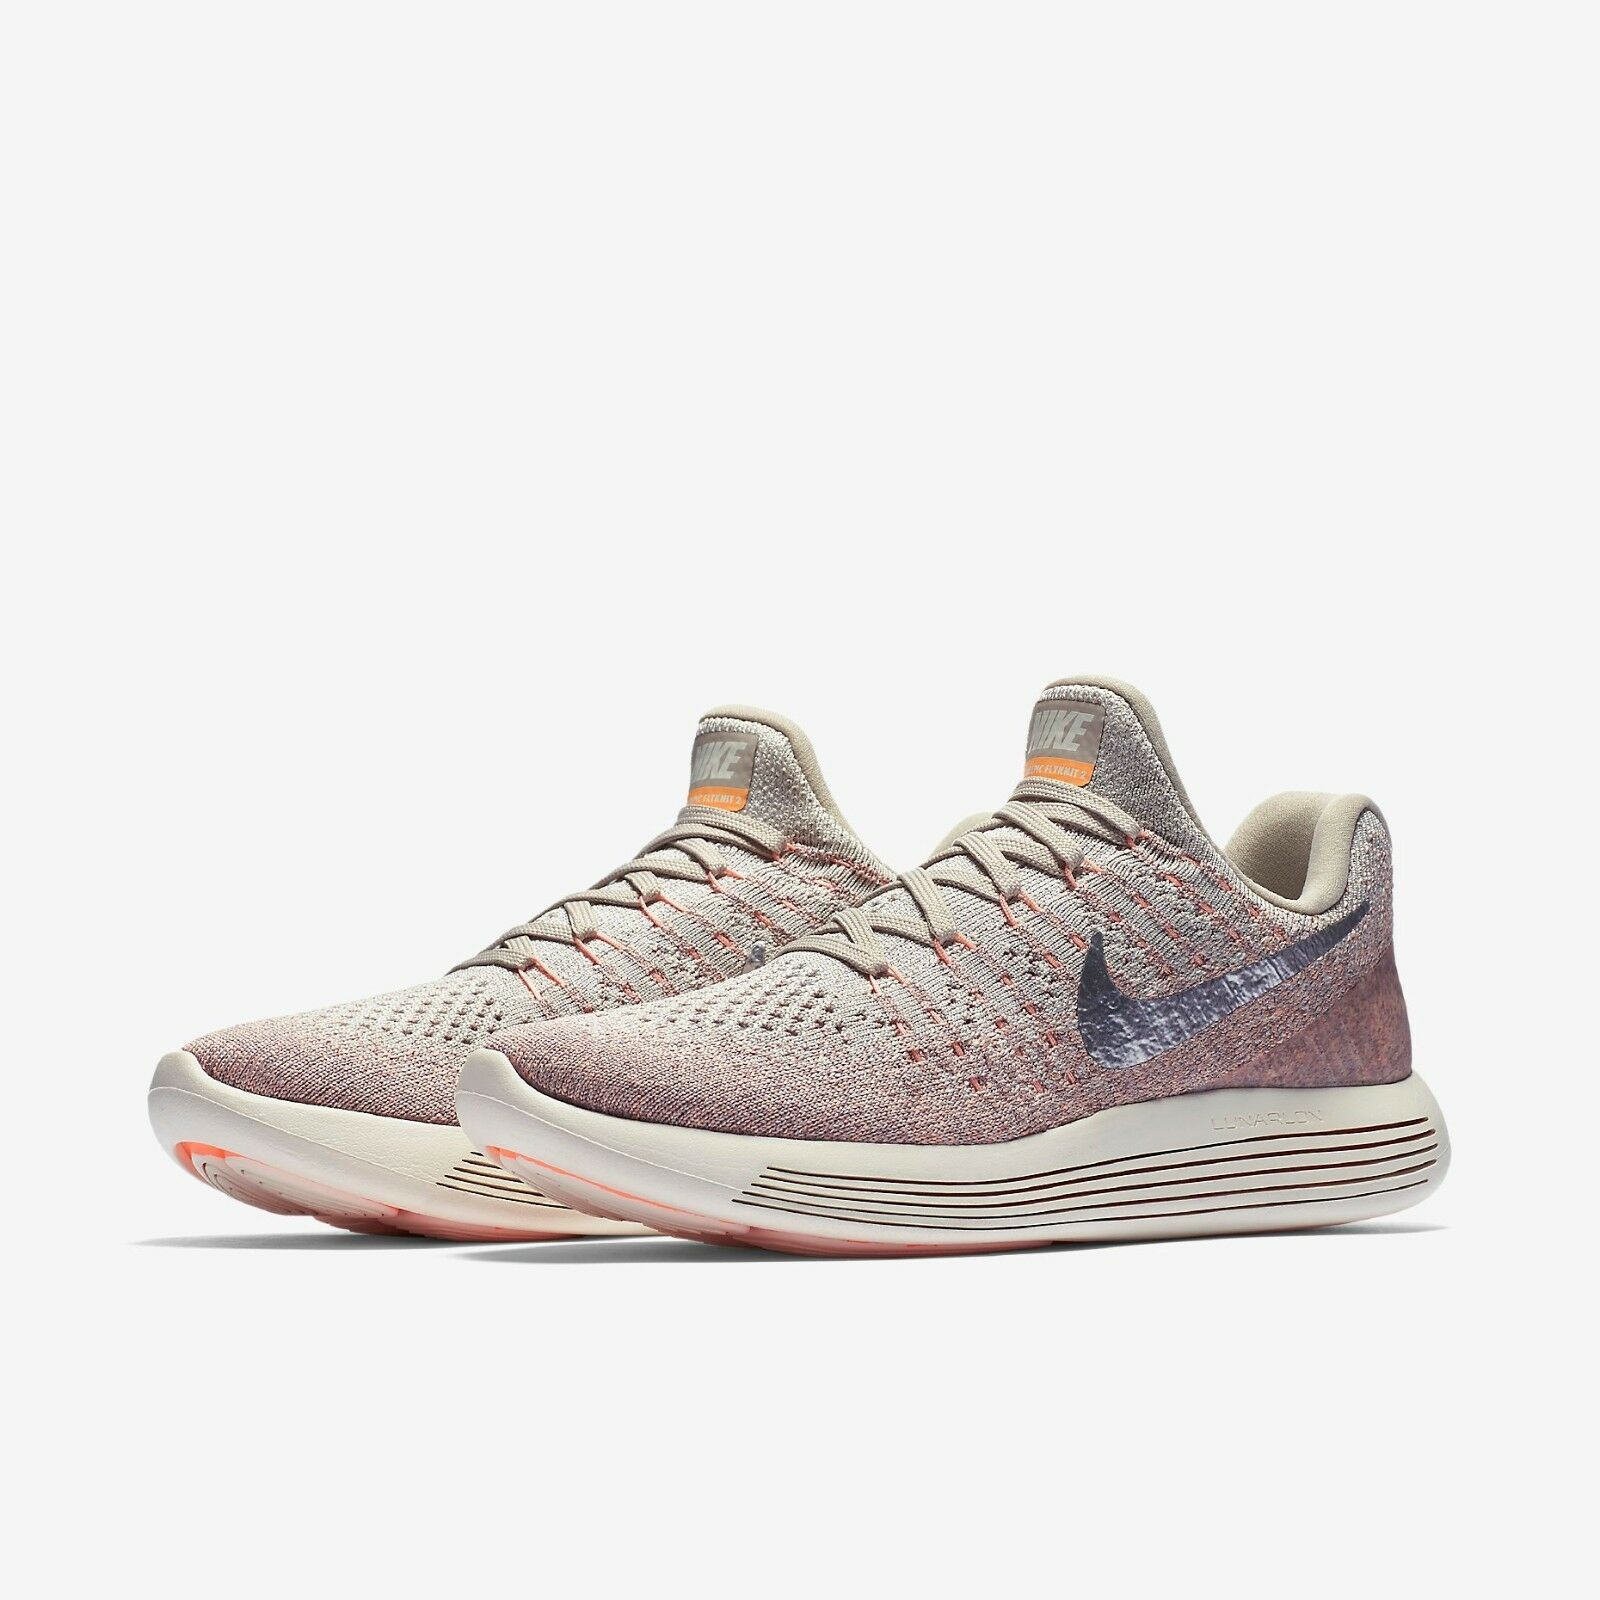 Femme Authentic Nike LunarEpic Flyknit 2 Running Chaussures